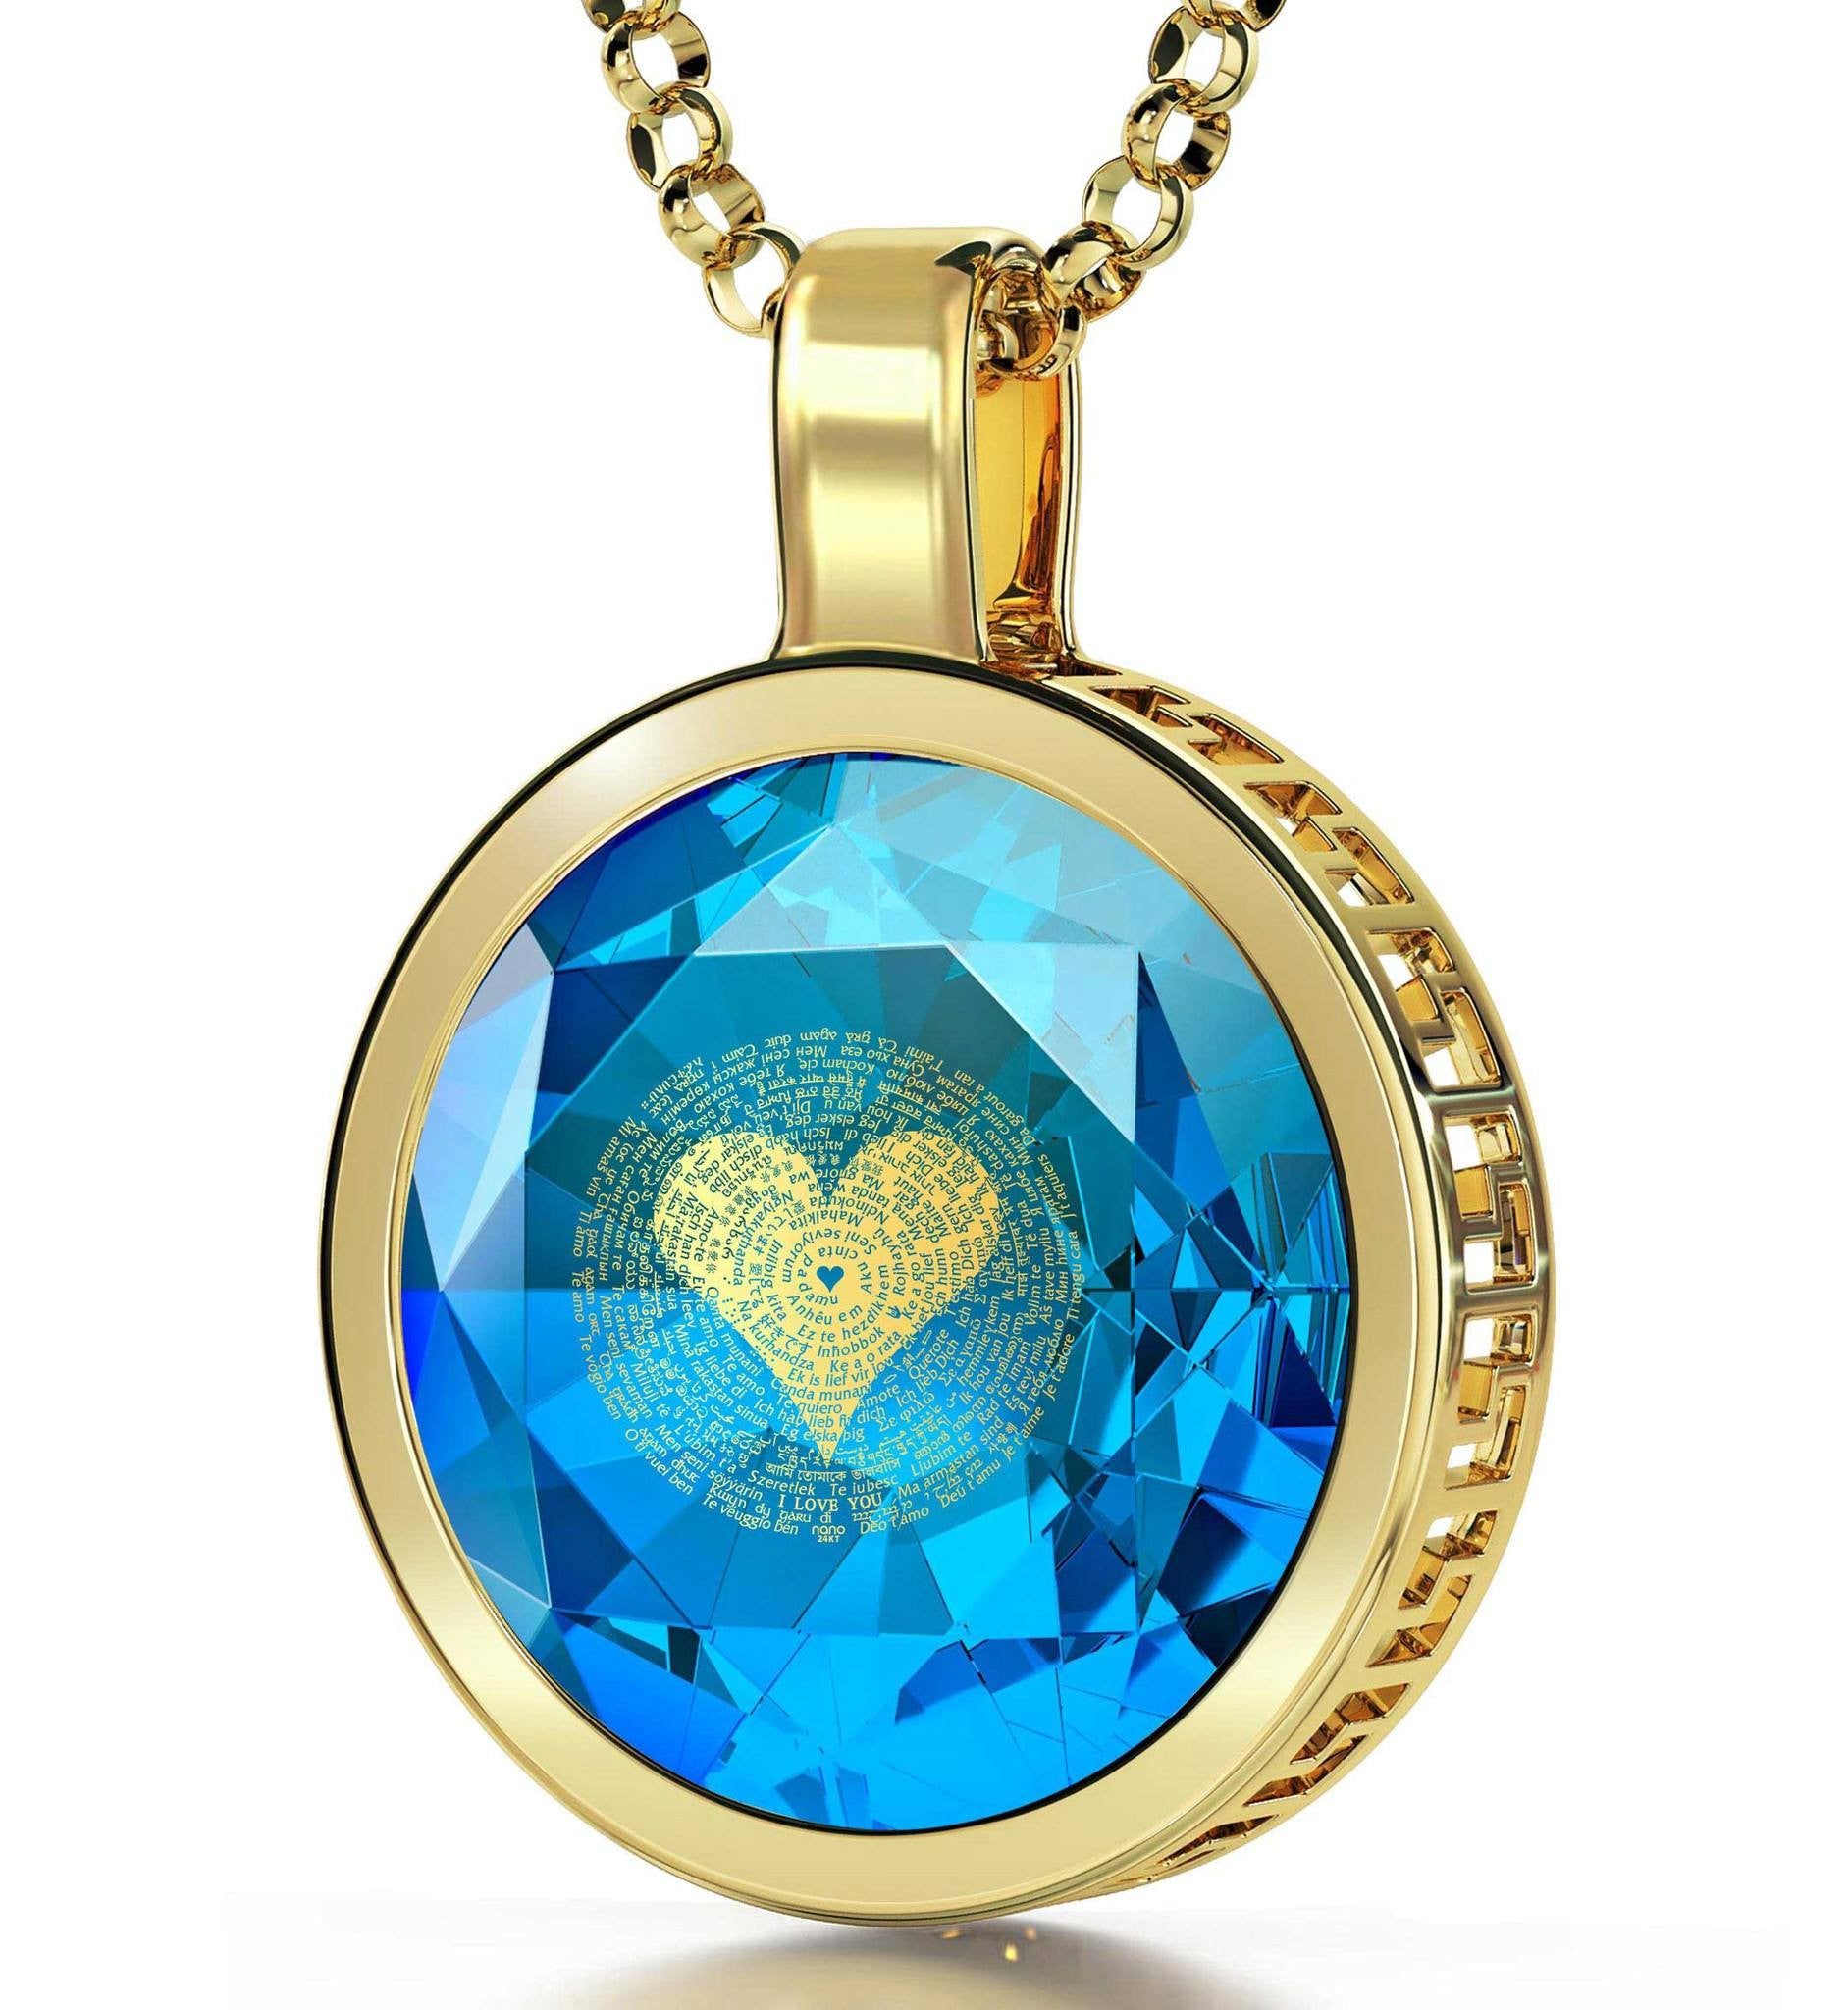 Valentines Presents for Her: Real 14k Gold Necklace, Blue Stone Jewellery, Girlfriend Christmas Presents